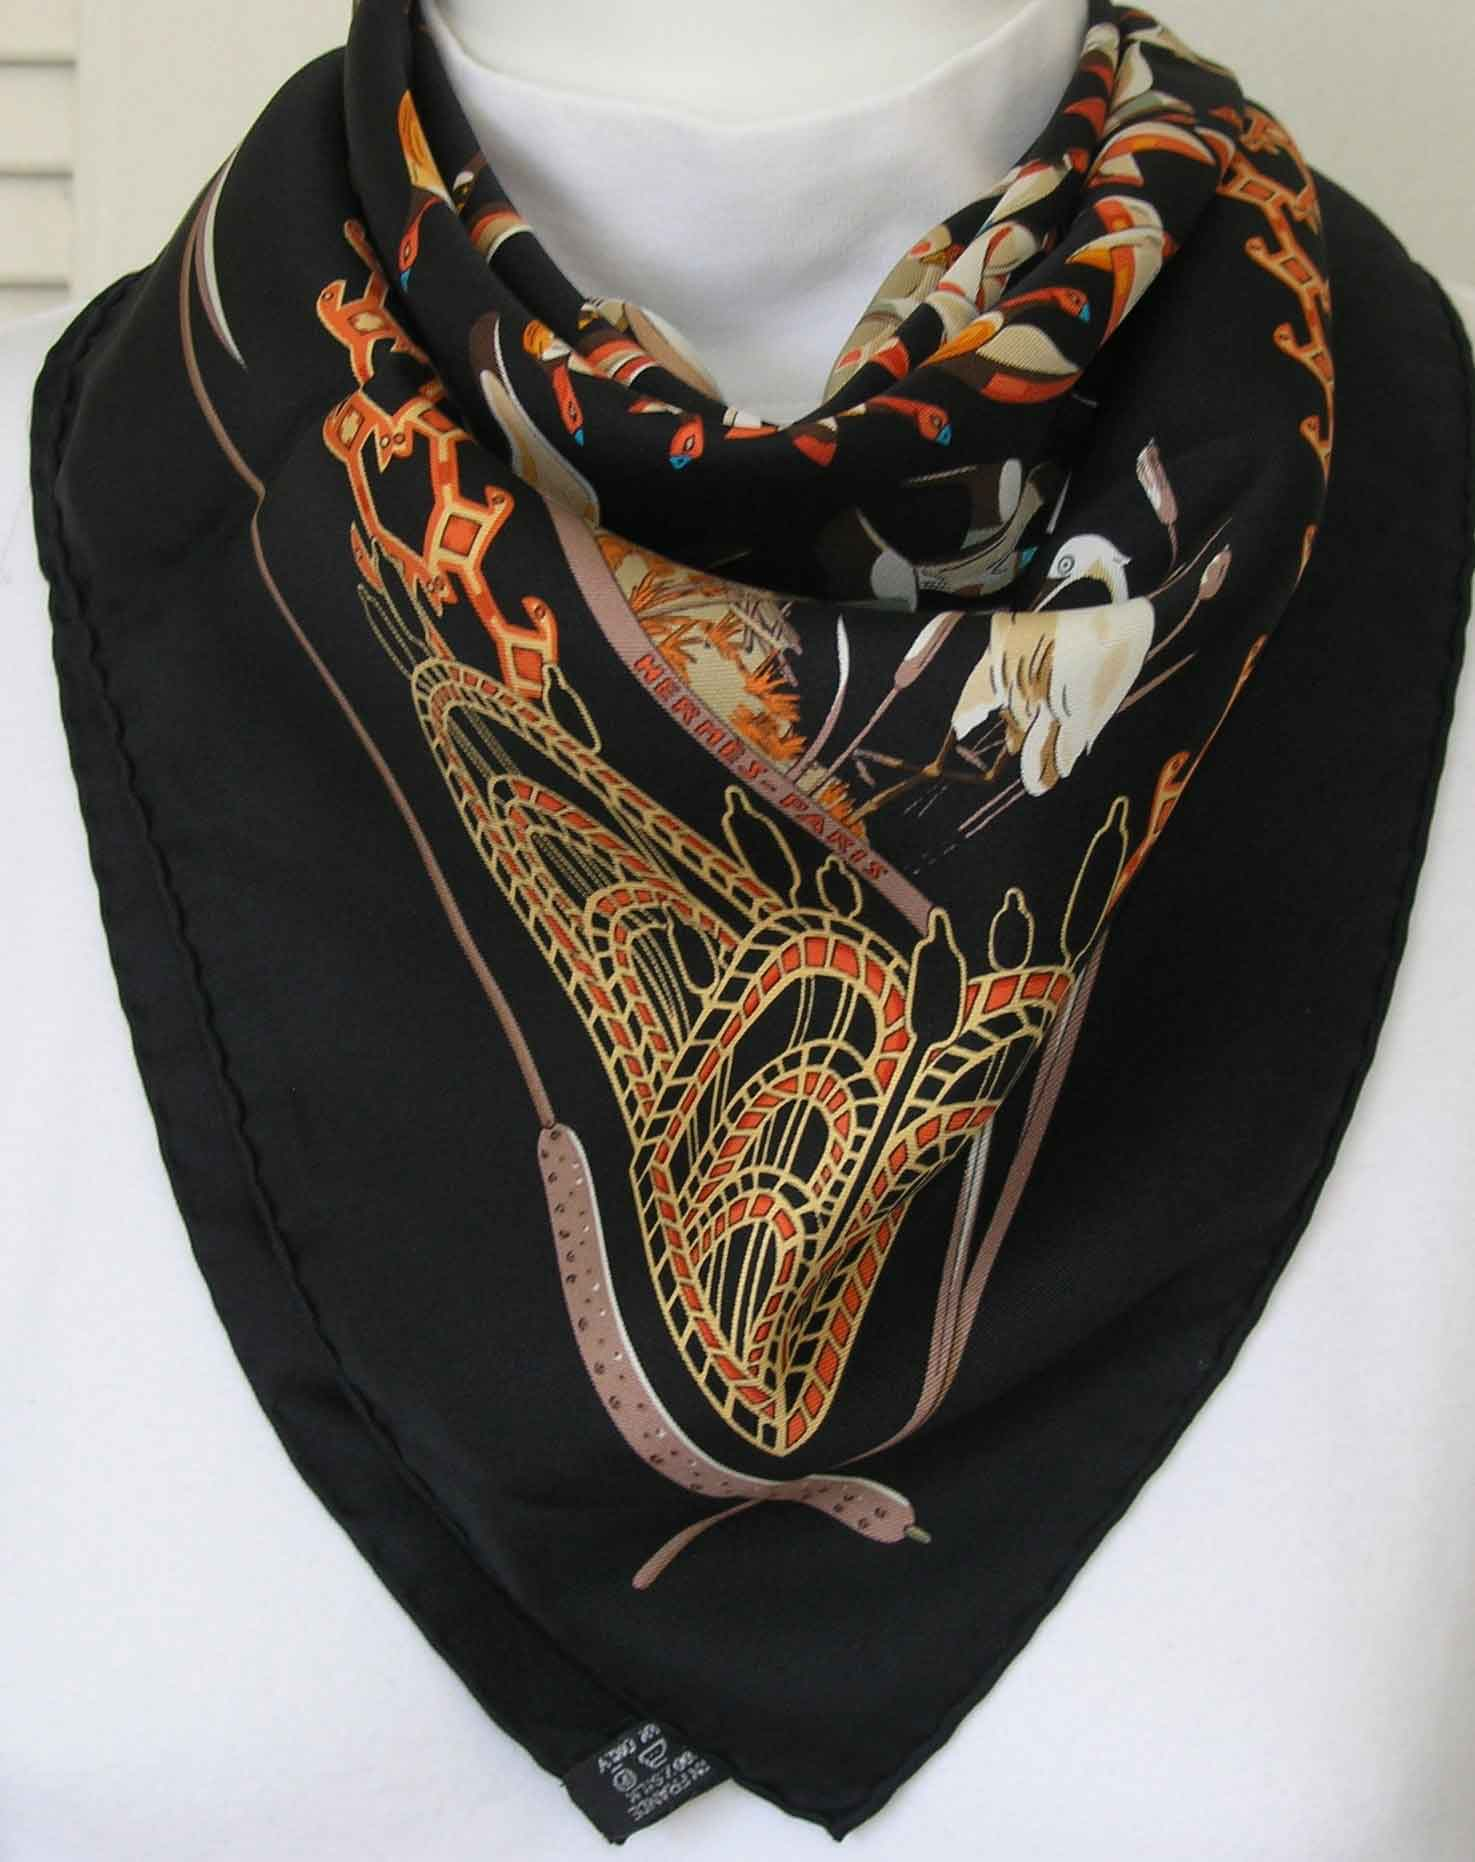 libre comme l 39 air hermes scarf it 39 s all goode. Black Bedroom Furniture Sets. Home Design Ideas